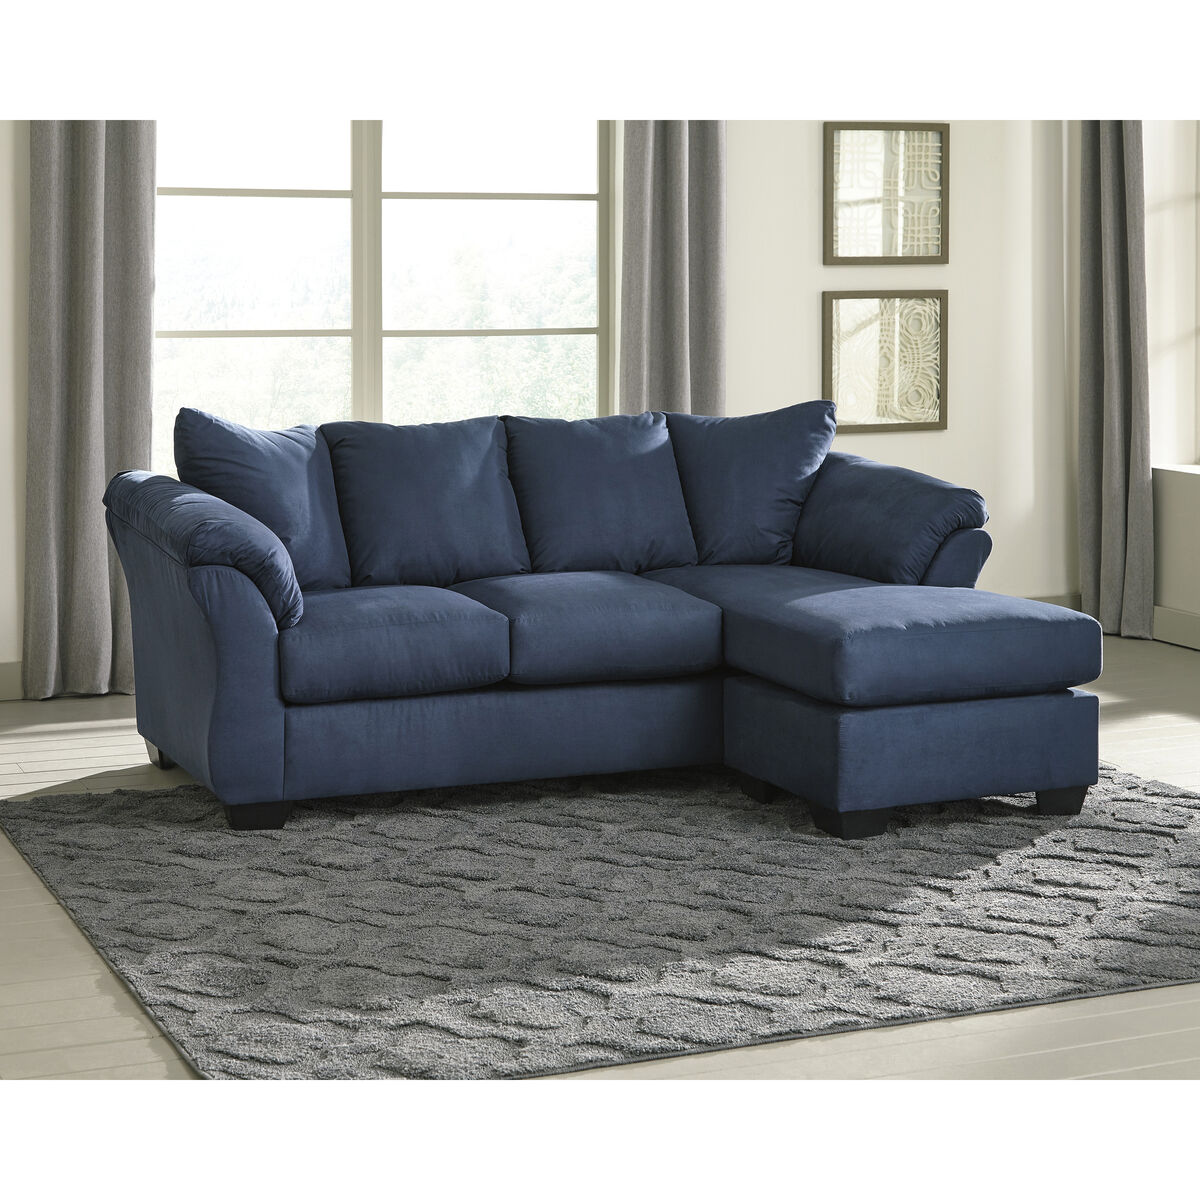 Signature Design By Ashley Darcy Sofa Chaise In Blue